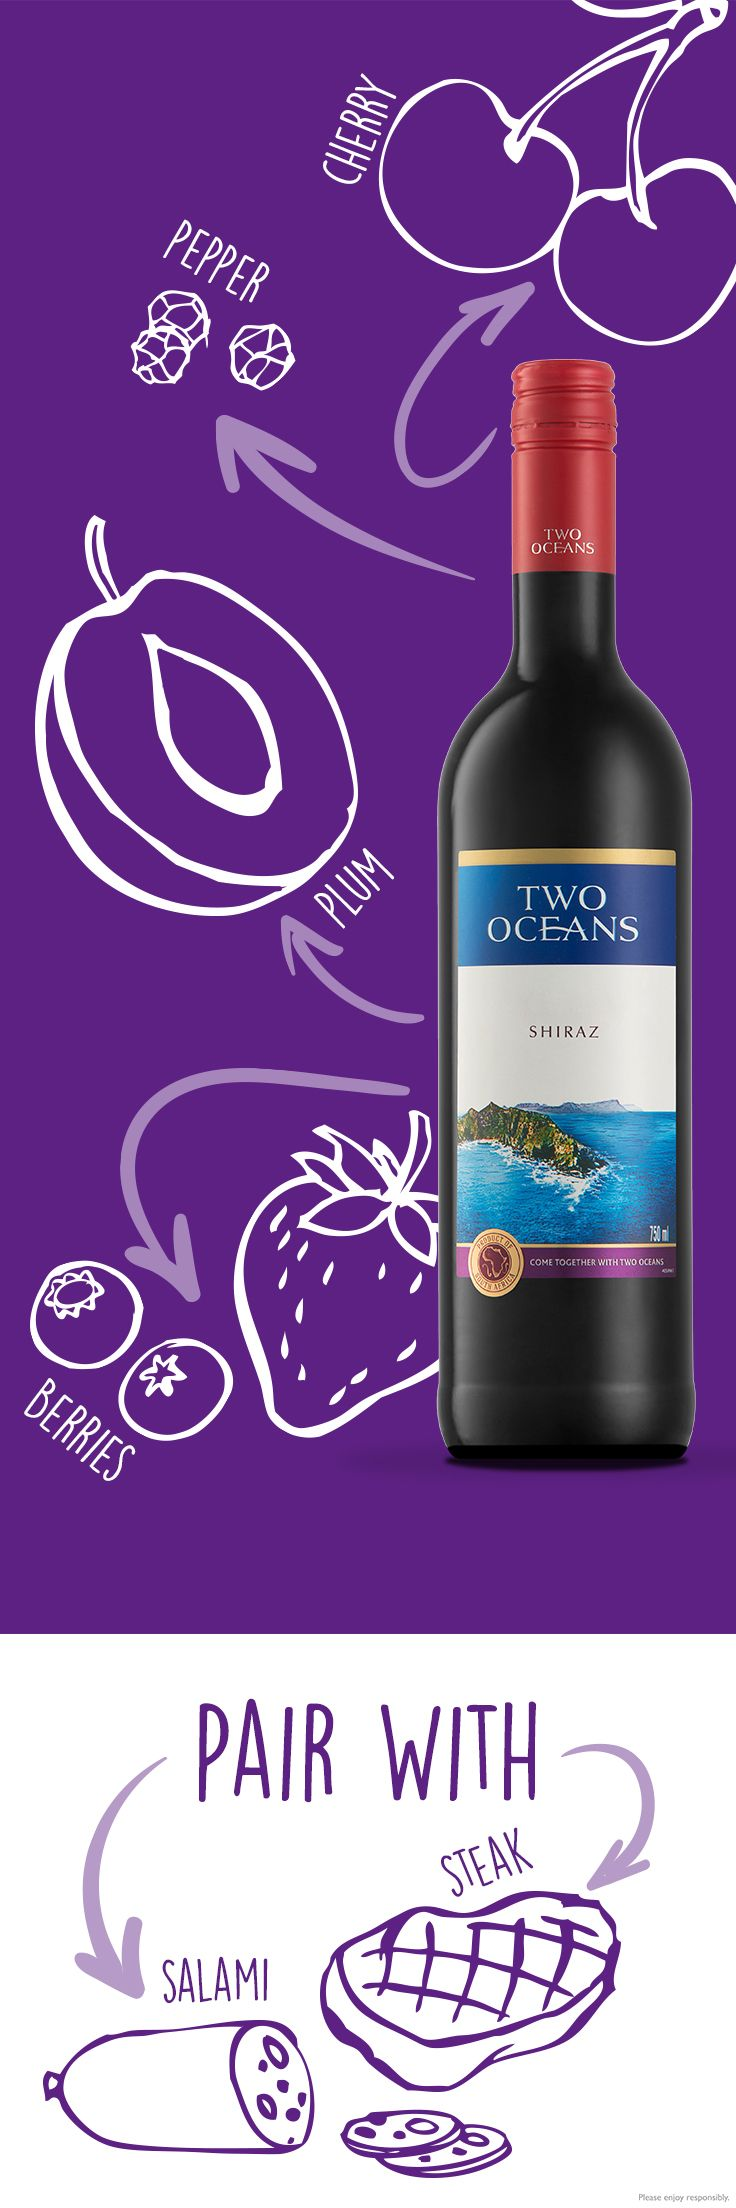 Two Oceans Shiraz is a red wine with flavours of berries, cherries, and subtle hints of black pepper. We'll sip it on its own or pair it with grilled lamb, beef stew, or spicy brisket.